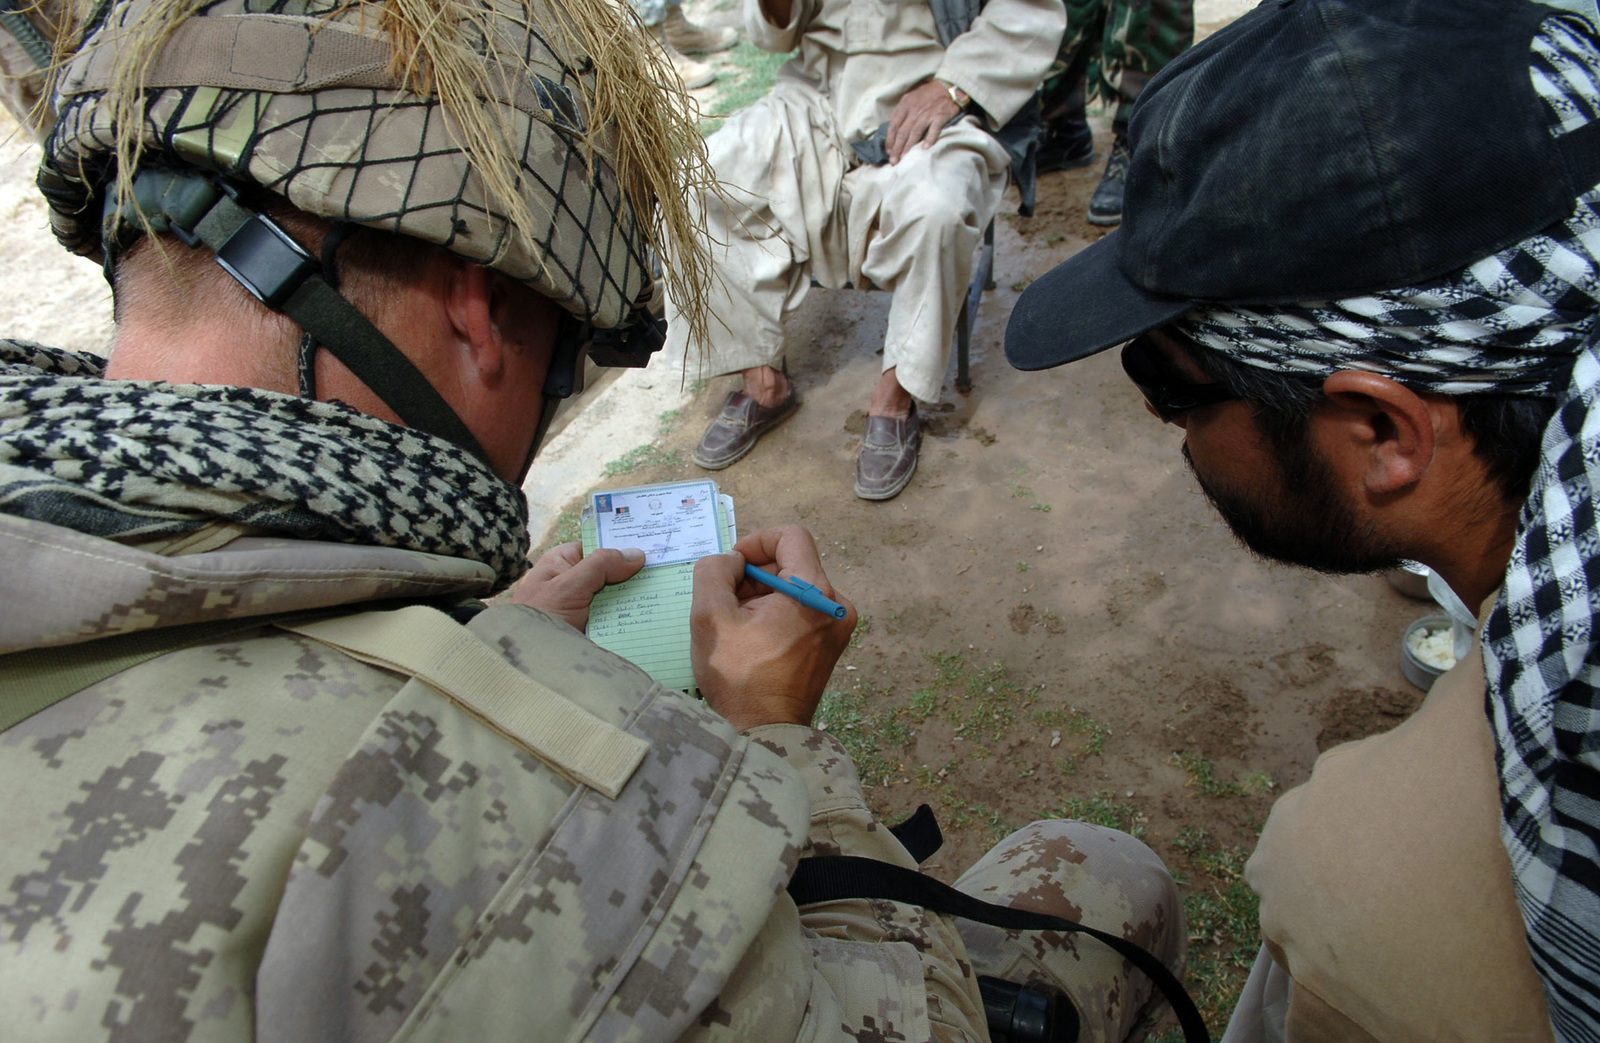 Canadian Forces SGT. Mark Janek (left), a Soldier with the 1ST Battalion, Princess Patricia's Canadian Light Infantry (PPCLI), takes notes while he and an interpreter, Ghulam Qadir Barak (right), attend refresher training course for the border patrol police on May 16, 2006, at Kandahar Air Field, Afghanistan, sponsored by the Canadian Military Police, Mobile Training Team (MTT). (U.S. Army photo by SGT. Andre Reynolds) (Released)